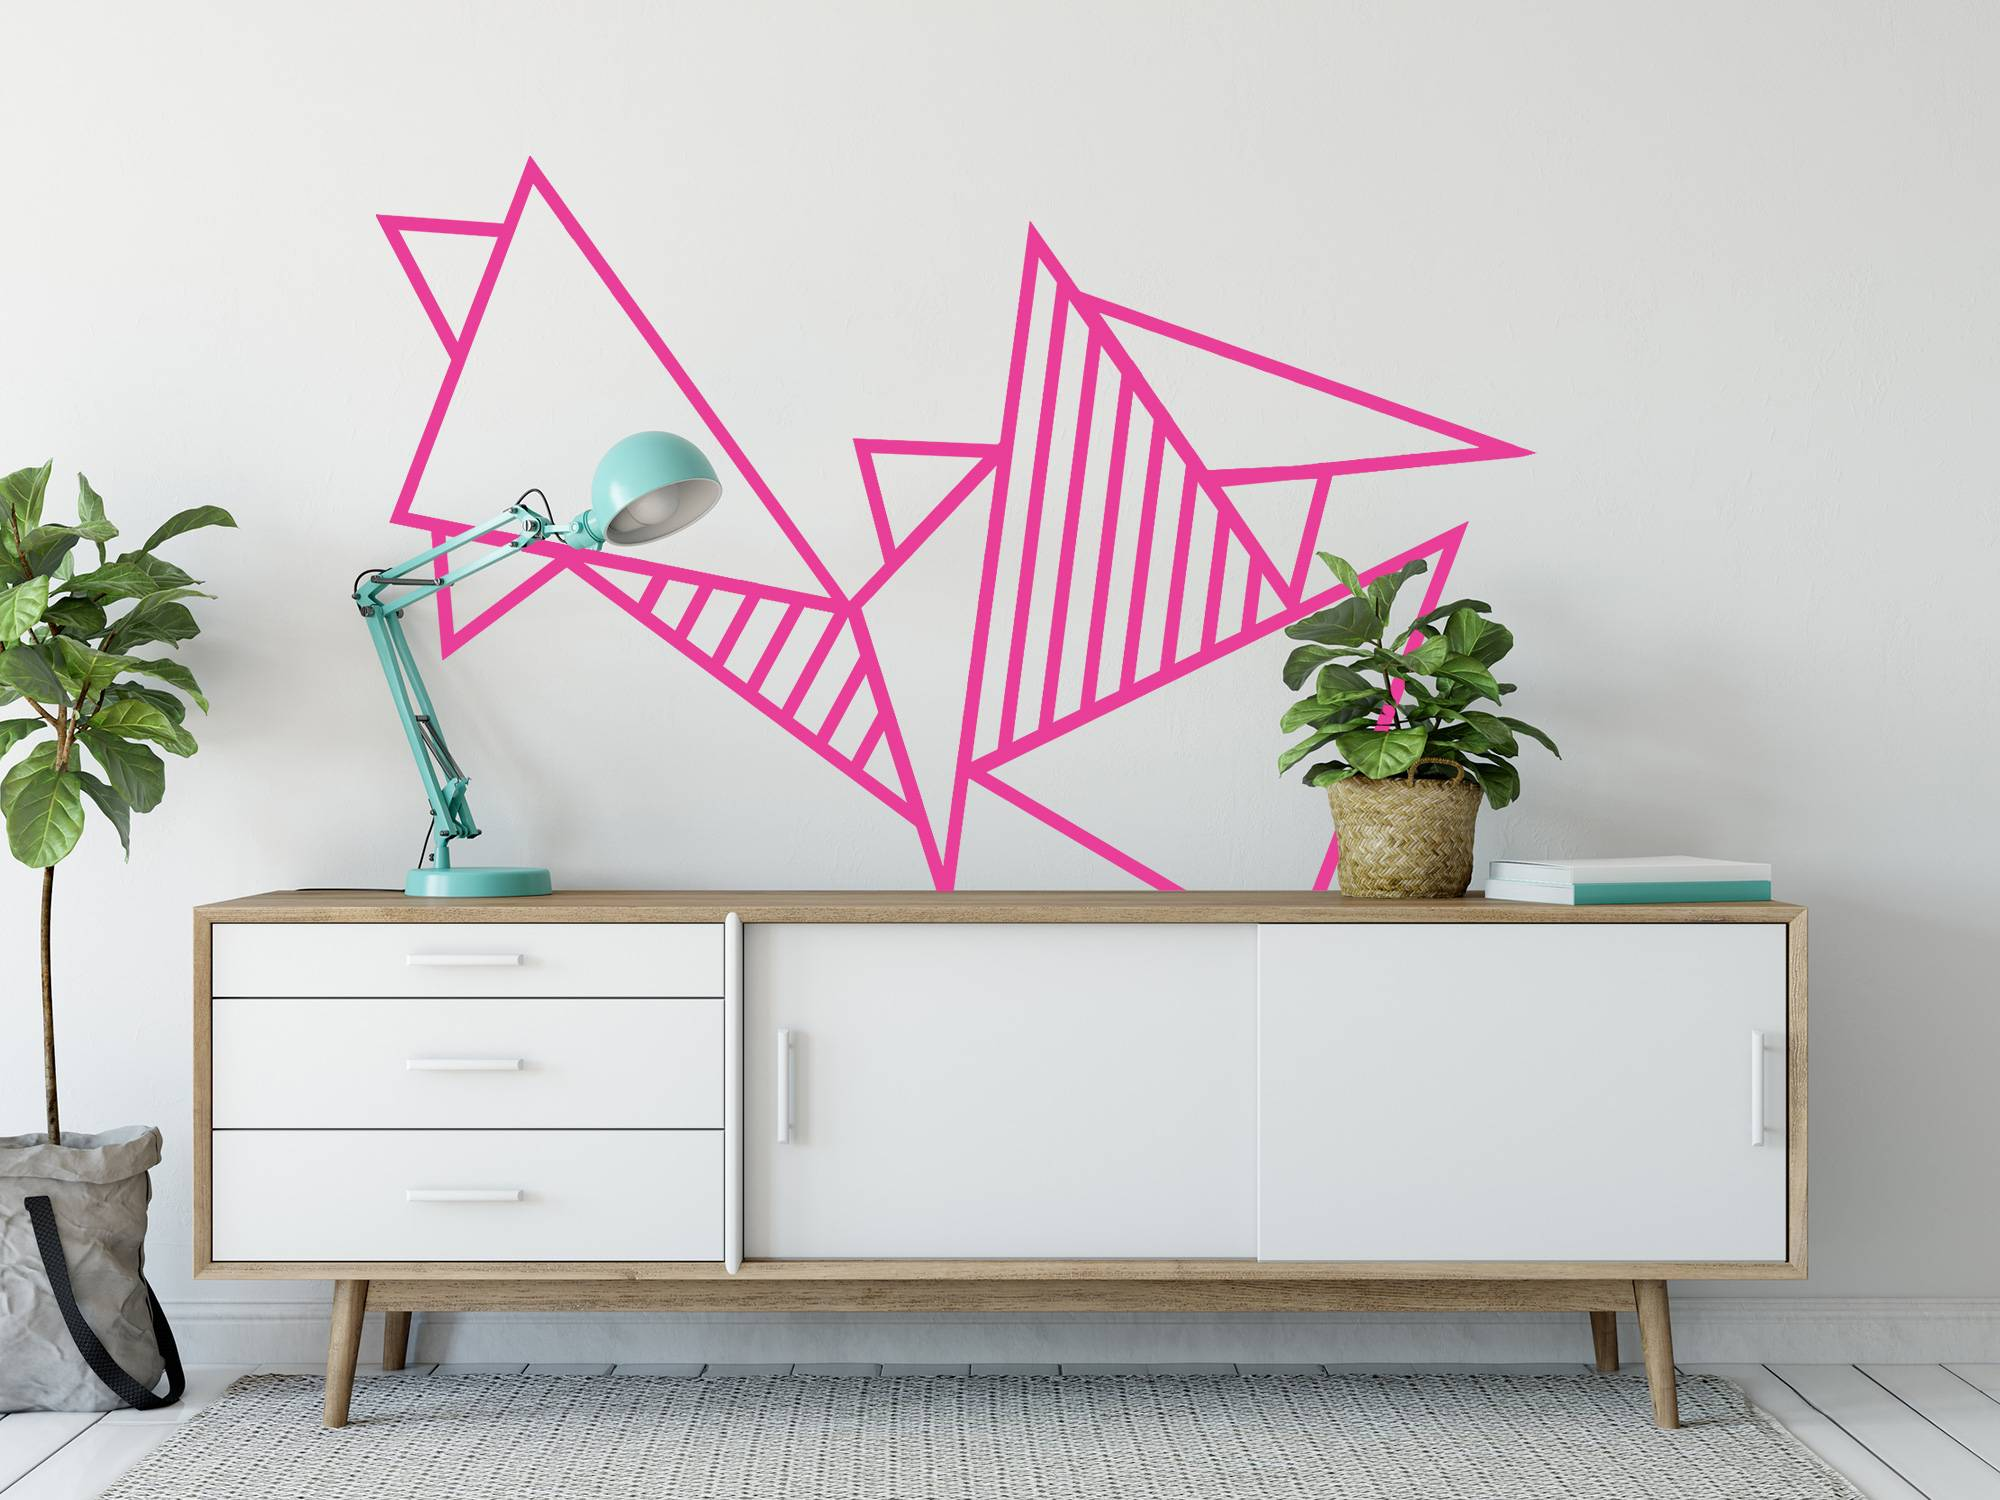 decoration murale tuto diy masking tape salon triangle rose